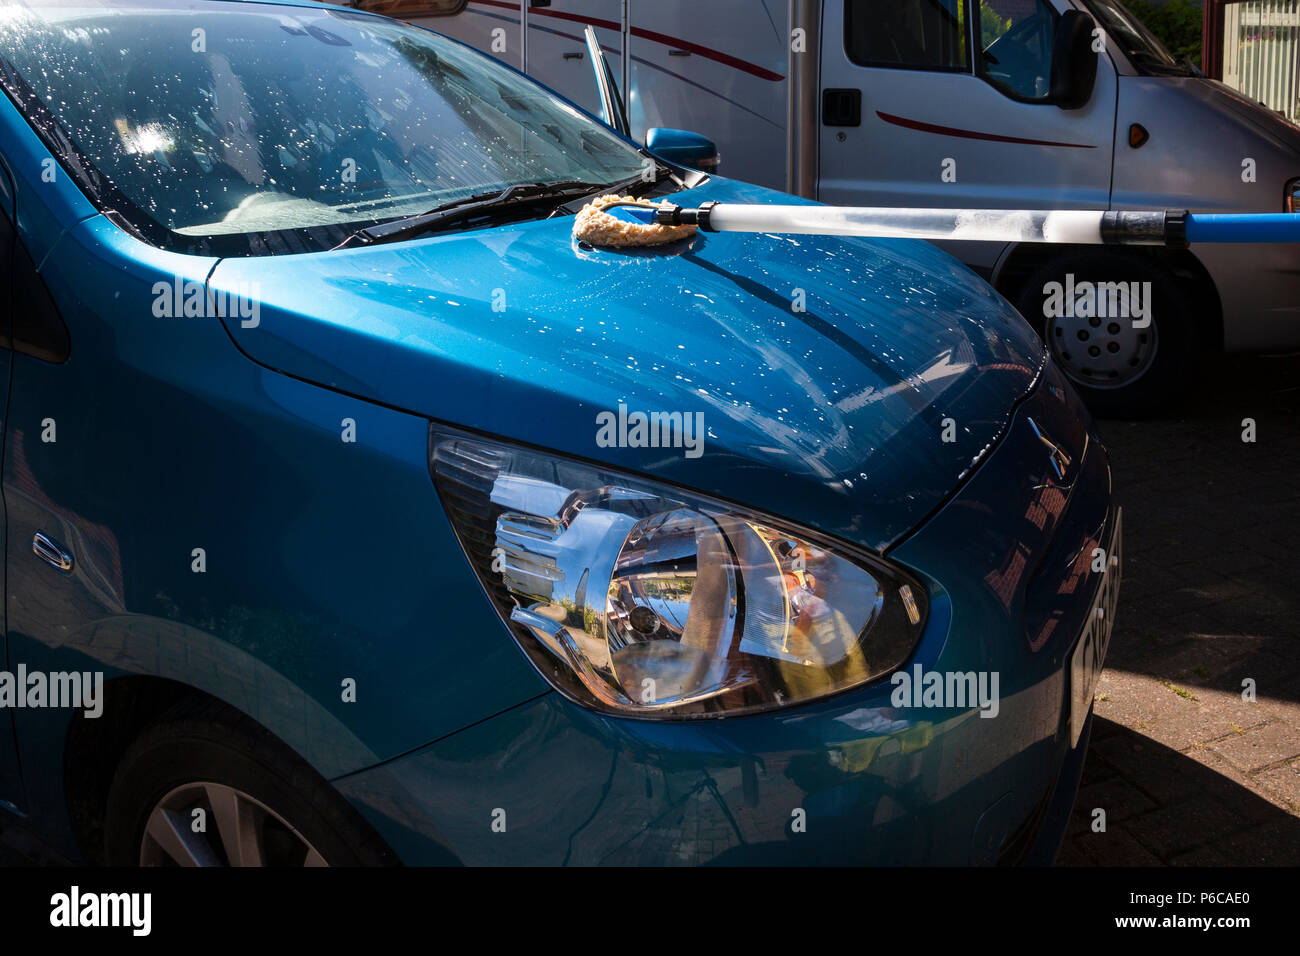 Washing car using collected rainwater during drought saving cost of metered water - Stock Image